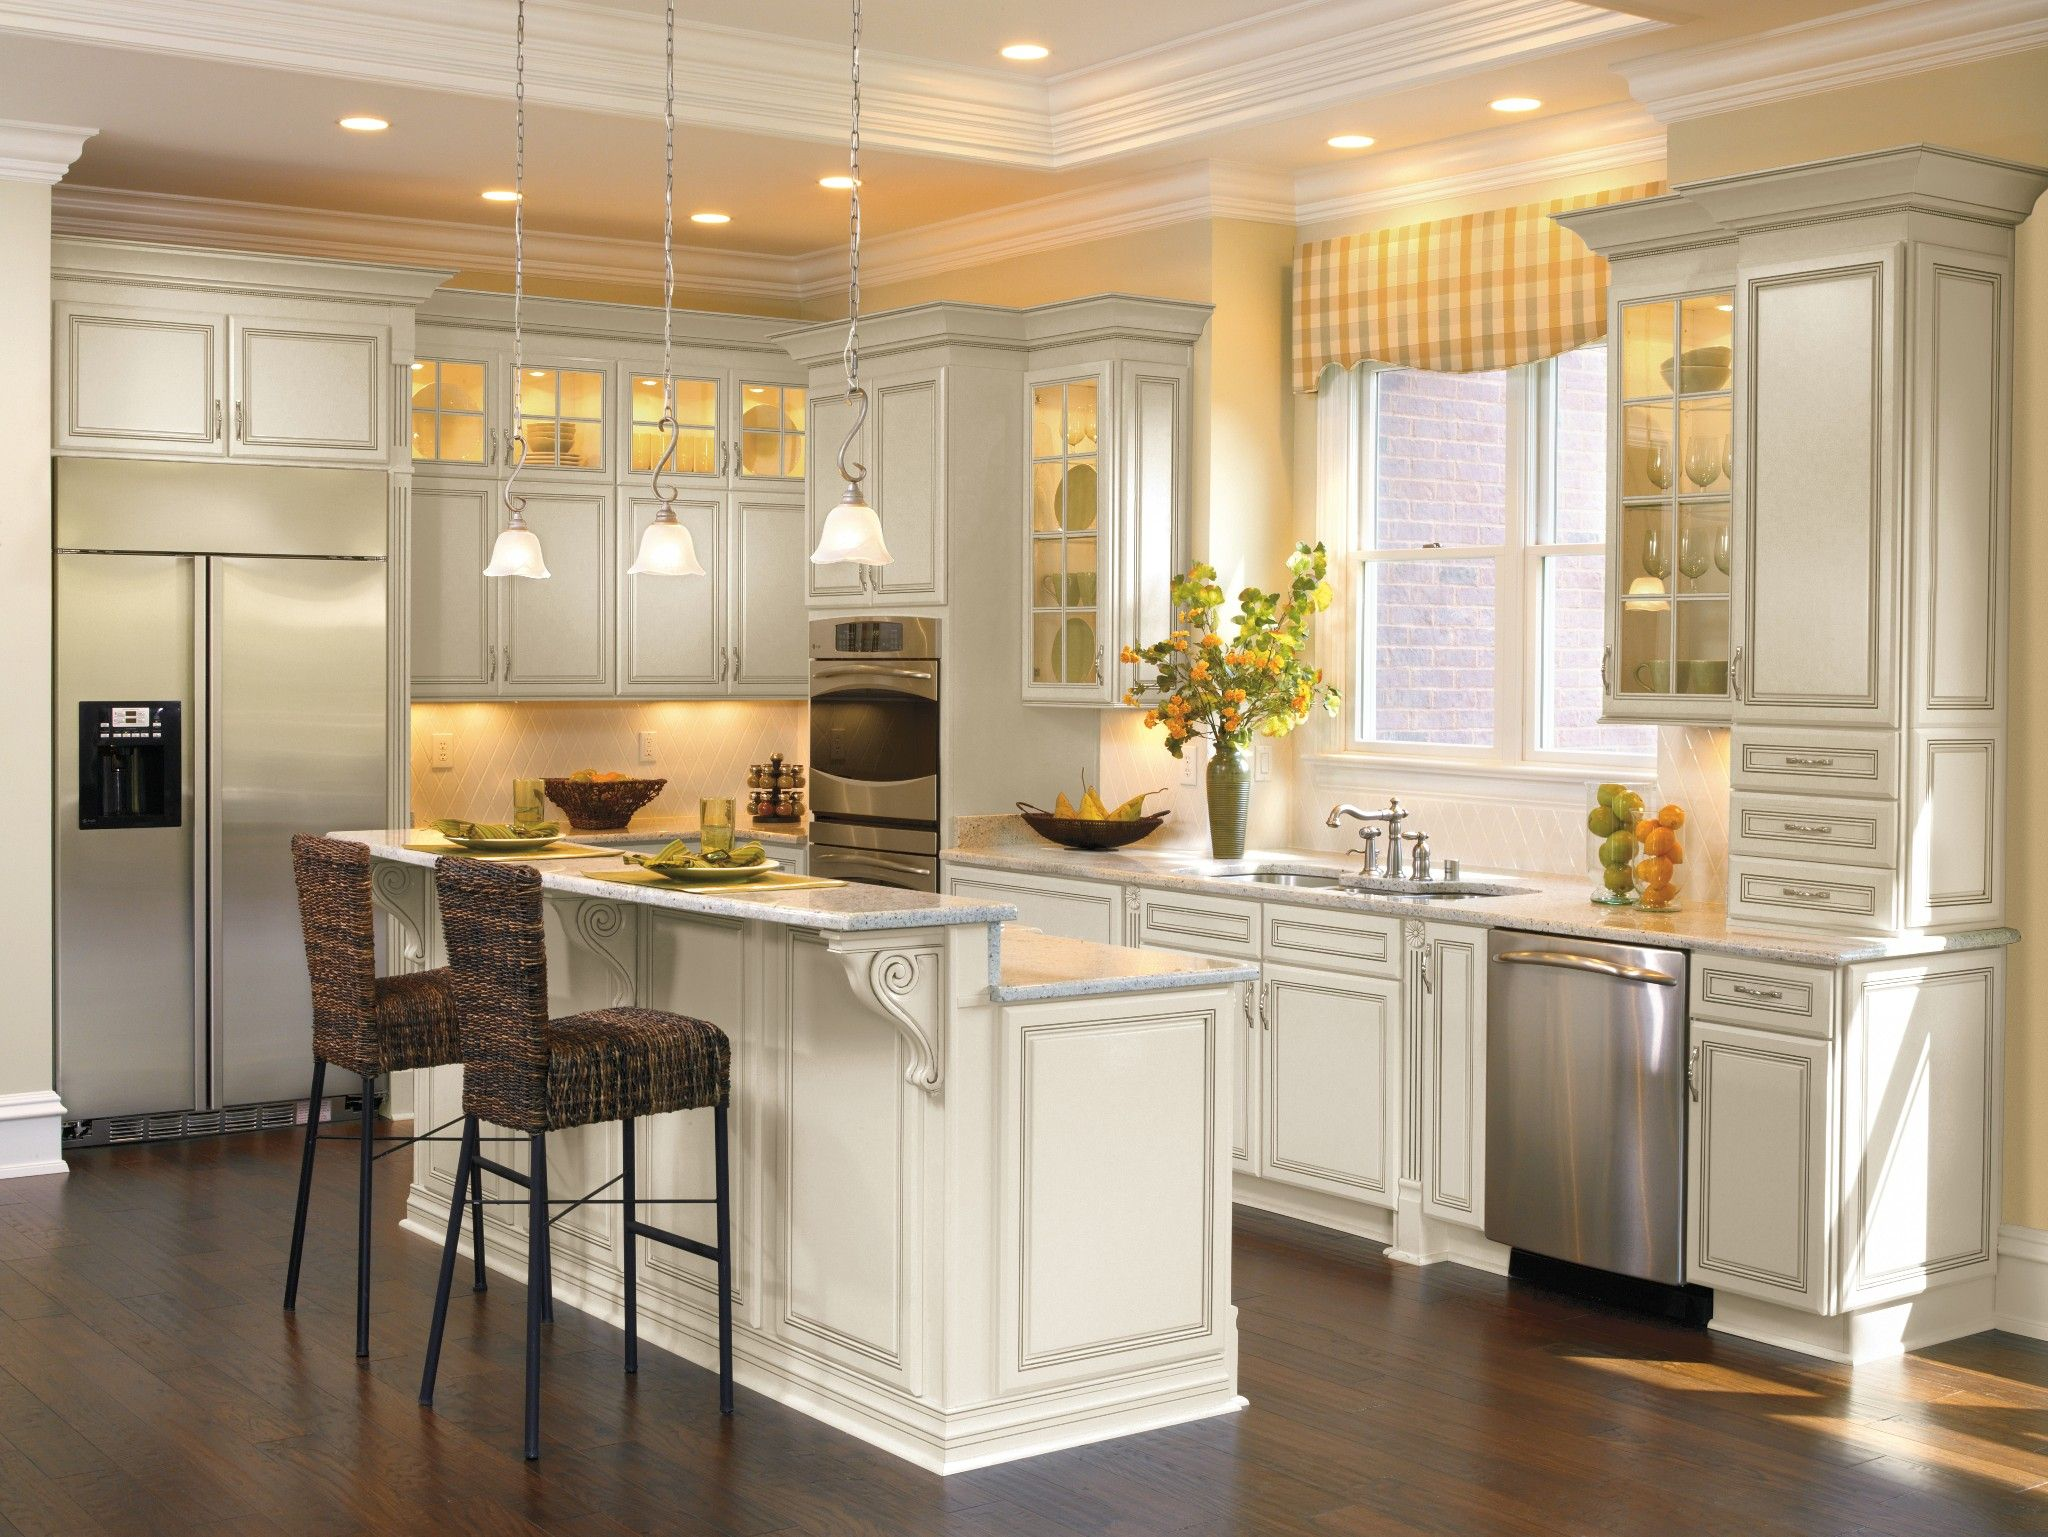 Decora Cabinets Kitchen Design Elegant Kitchens Kitchen Remodel Kitchen Renovation